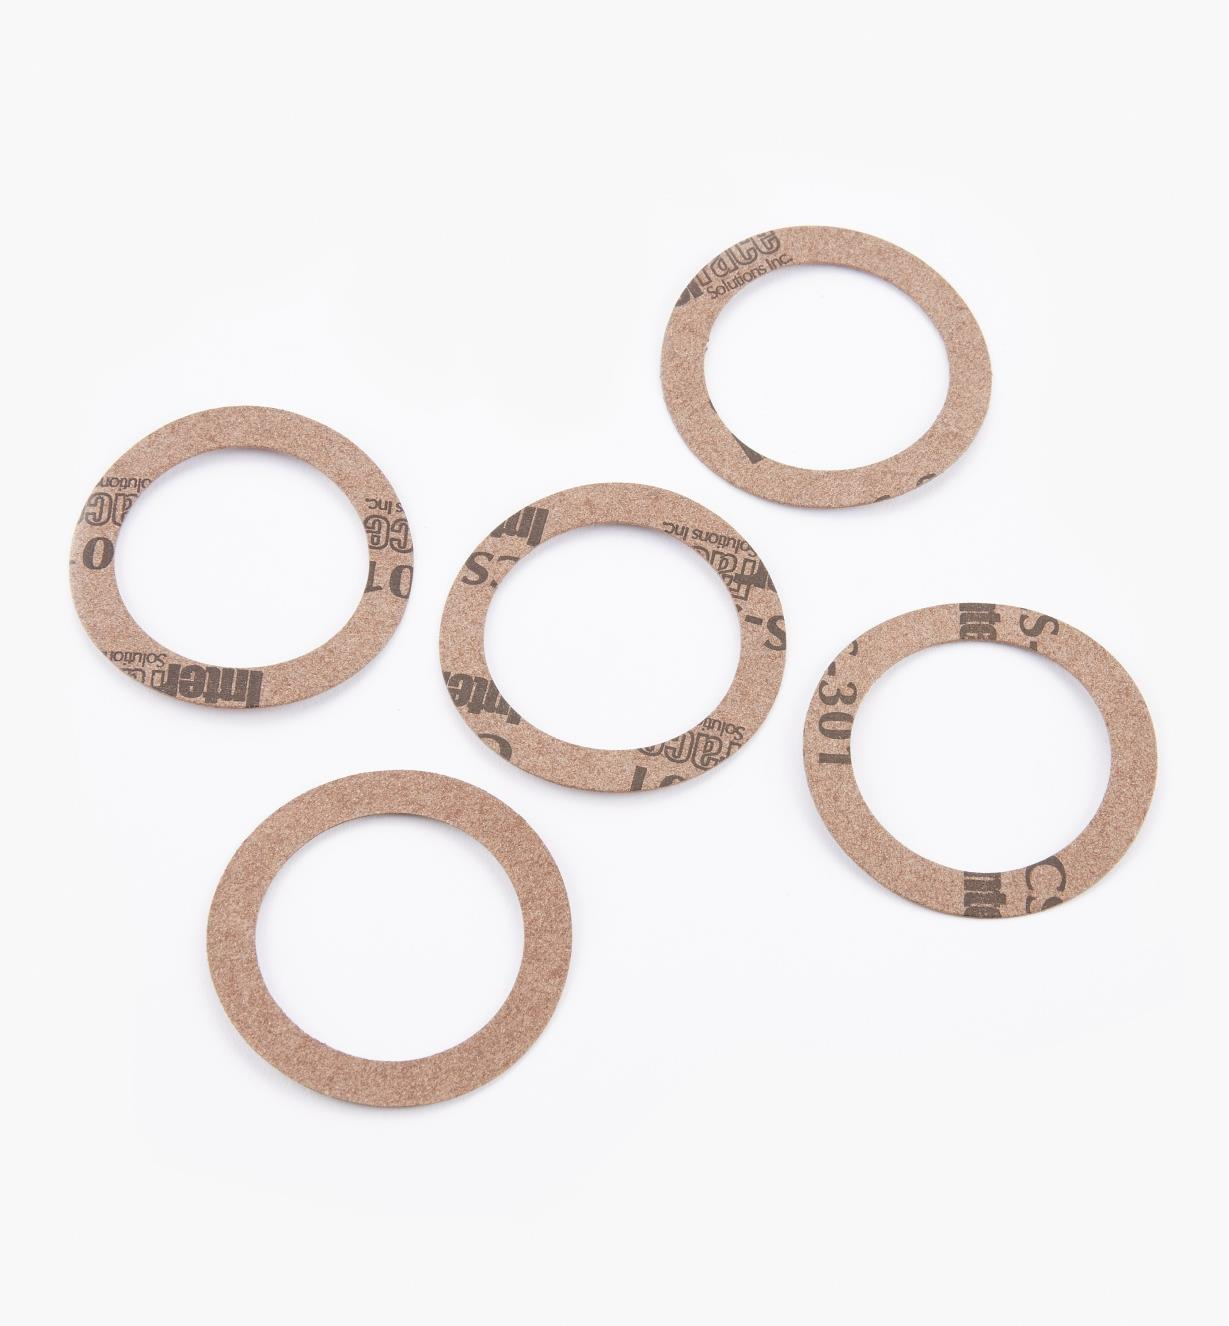 03K0303 - Jar Gasket, pkg. of 5